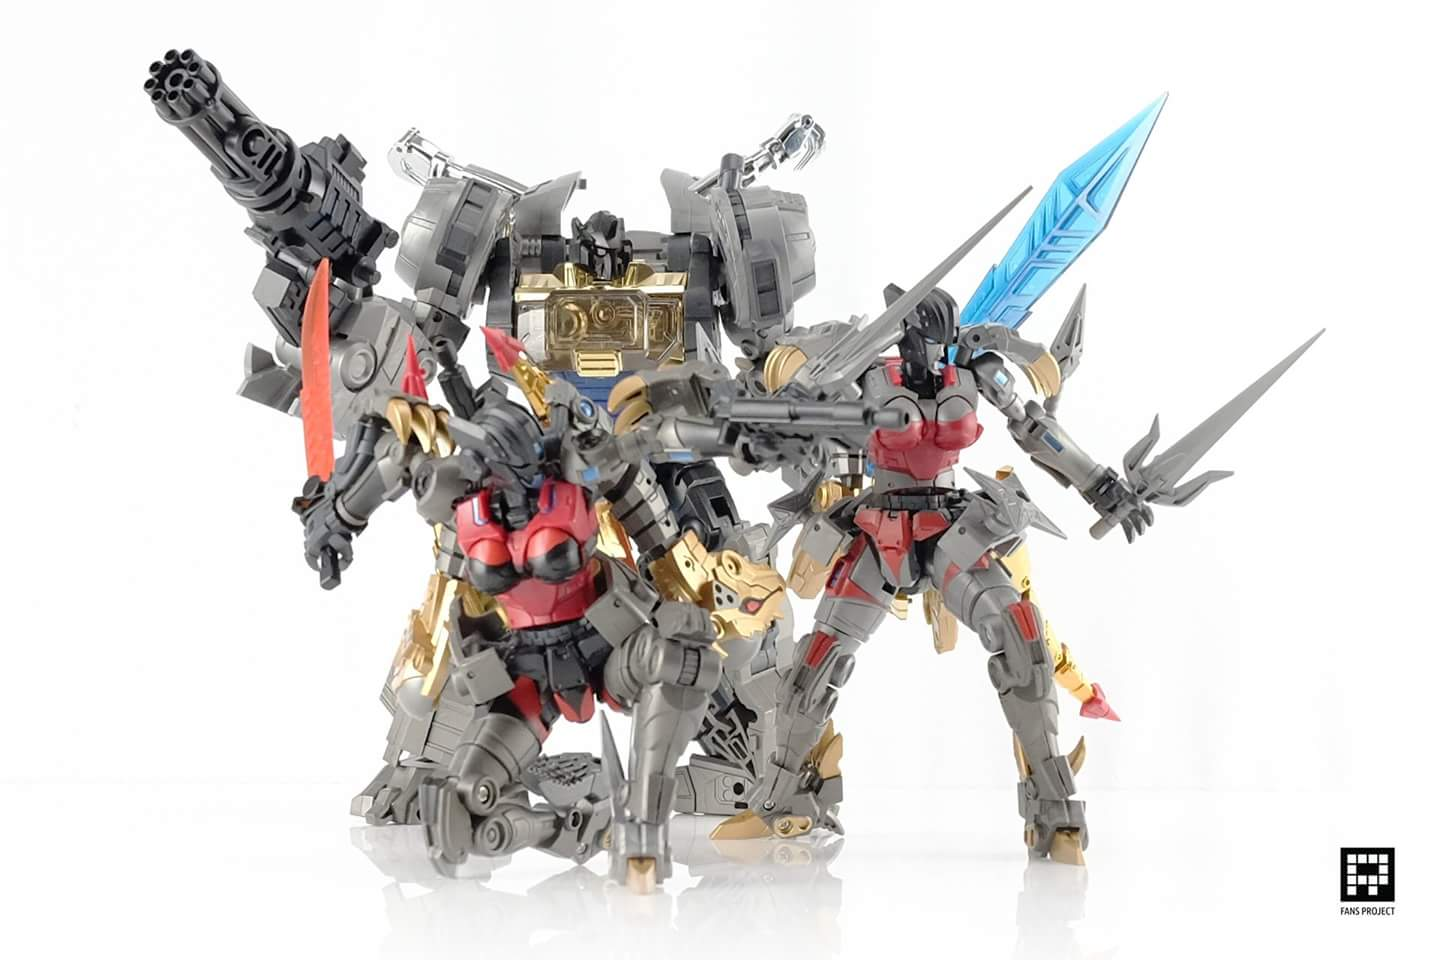 [FansProject] Produit Tiers - Jouets LER (Lost Exo Realm) - aka Dinobots - Page 3 POgSdXwz